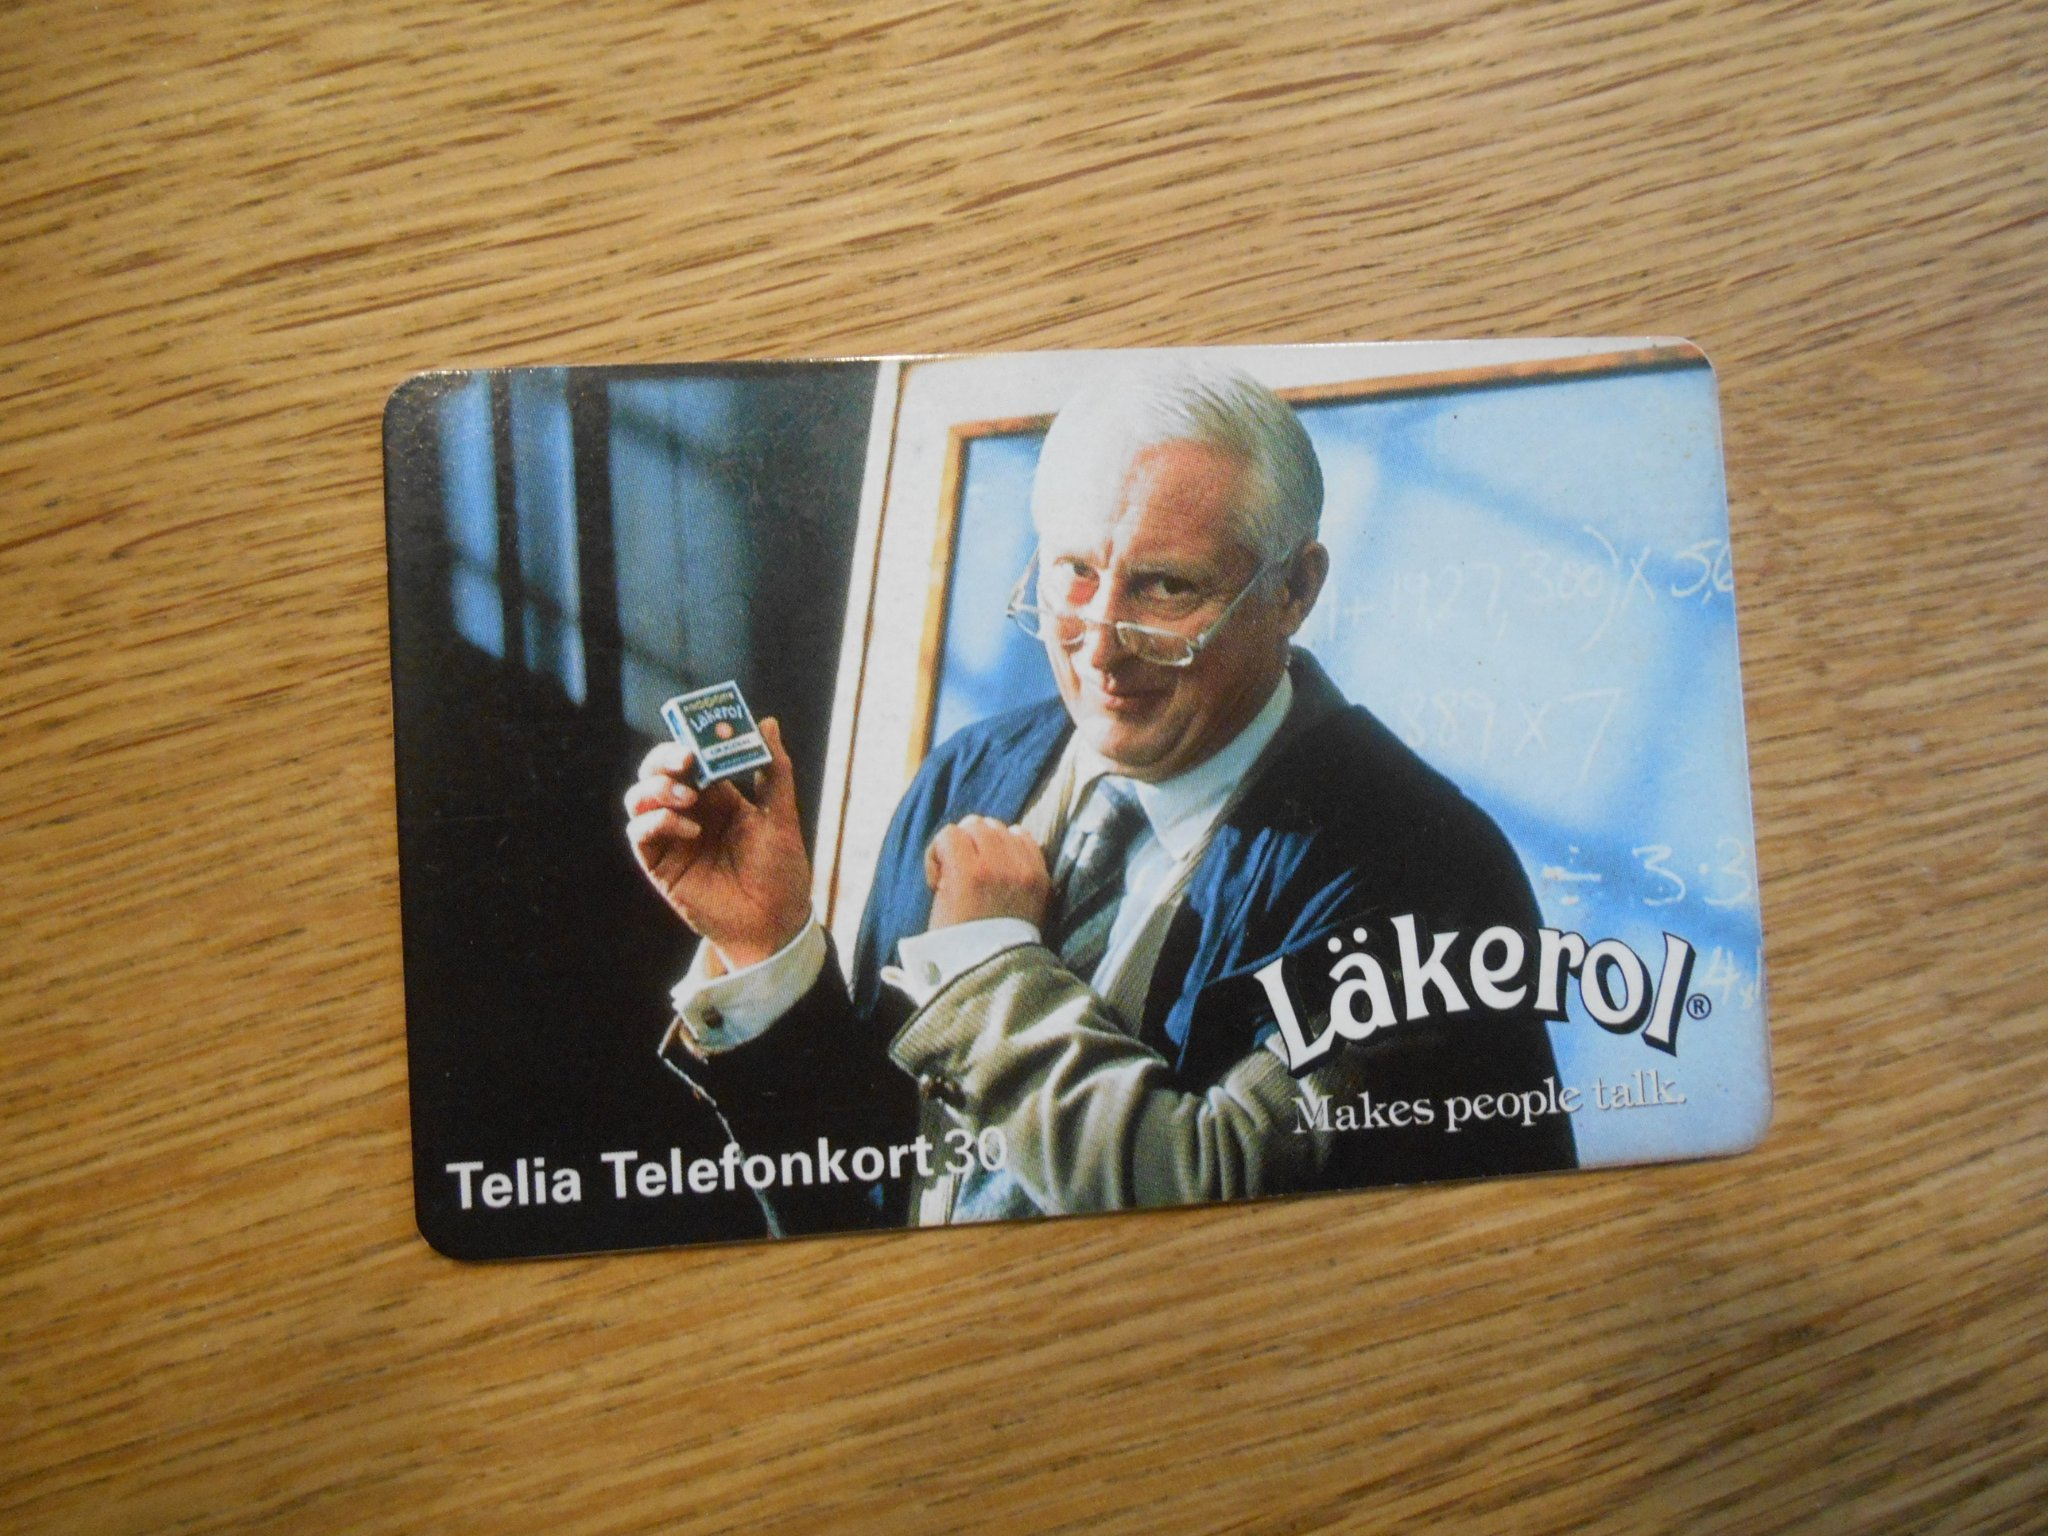 TELIA TELEFONKORT 30 LÄKEROL MAKES PEOPLE TALK